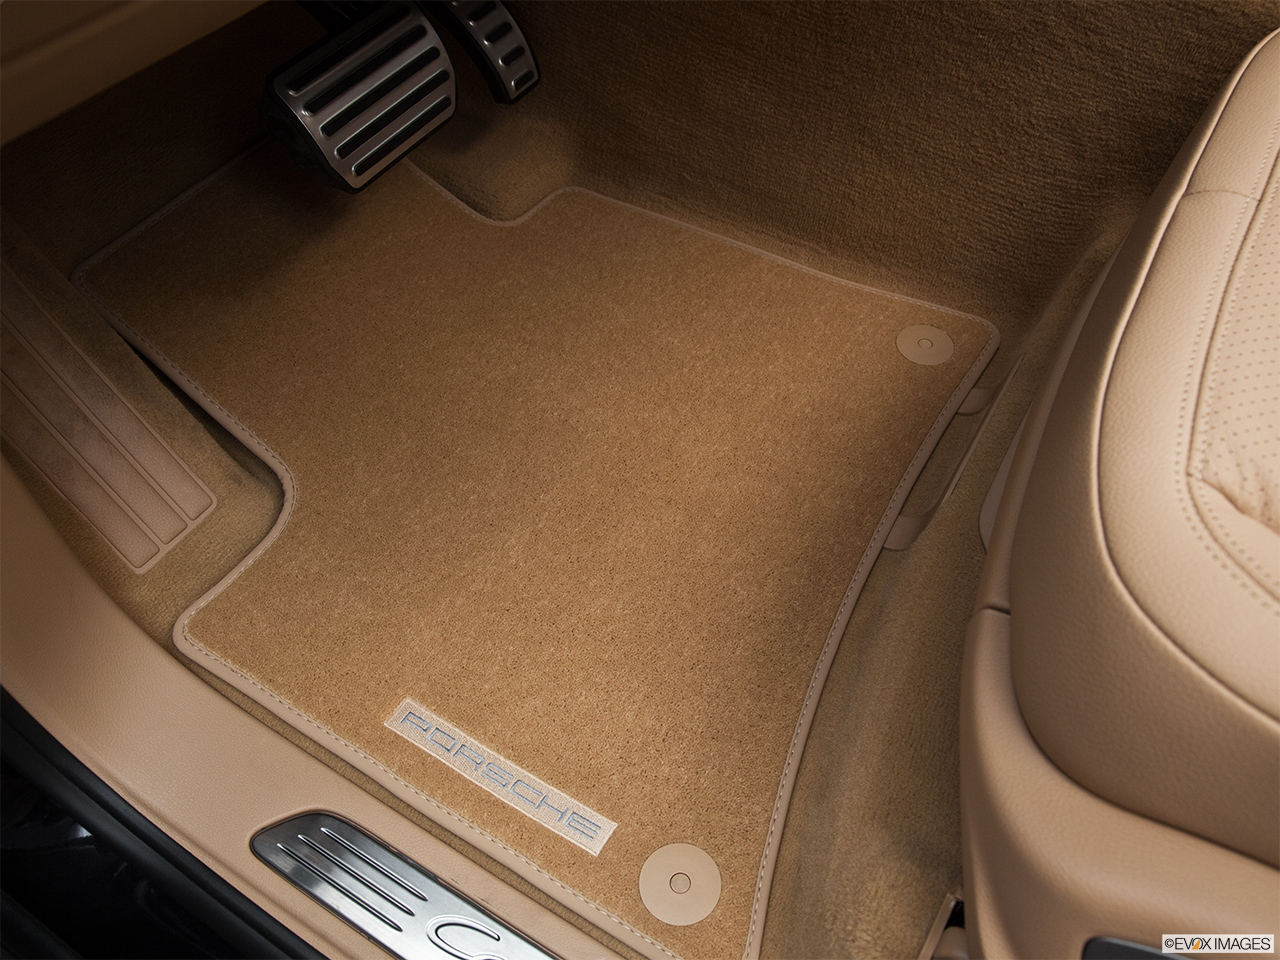 2011 Porsche Cayenne S Hybrid Base Driver's floor mat and pedals. Mid-seat level from outside looking in.